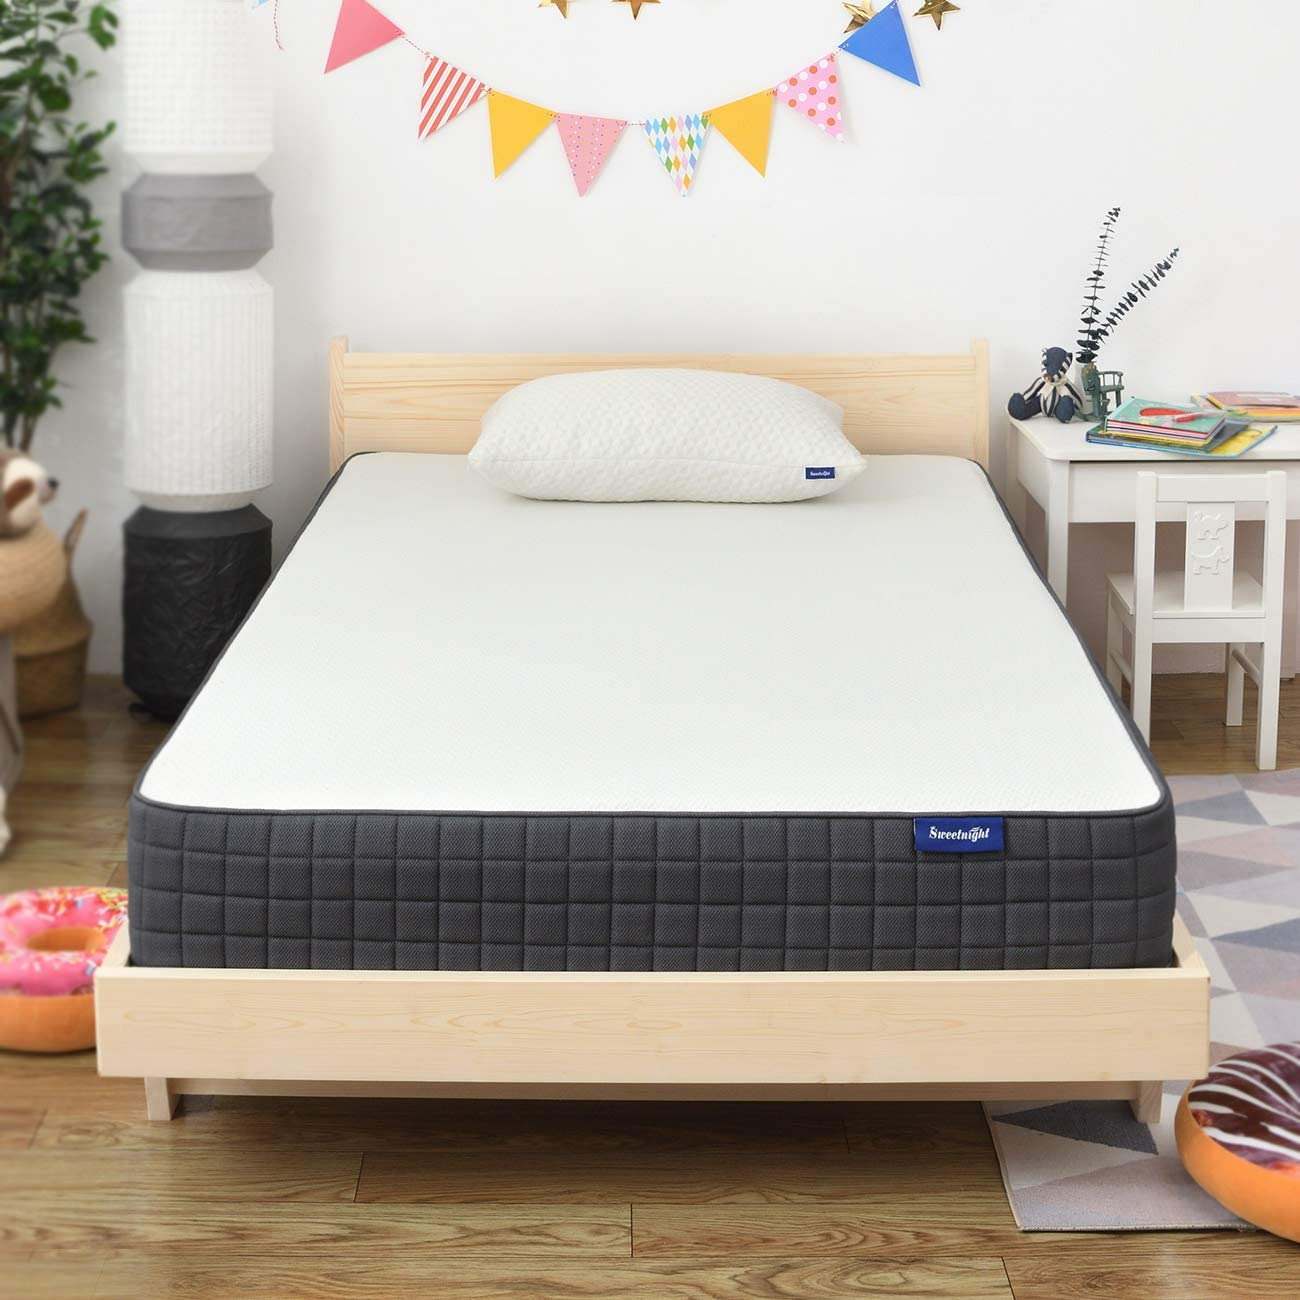 Image result for sweetnight twin mattress